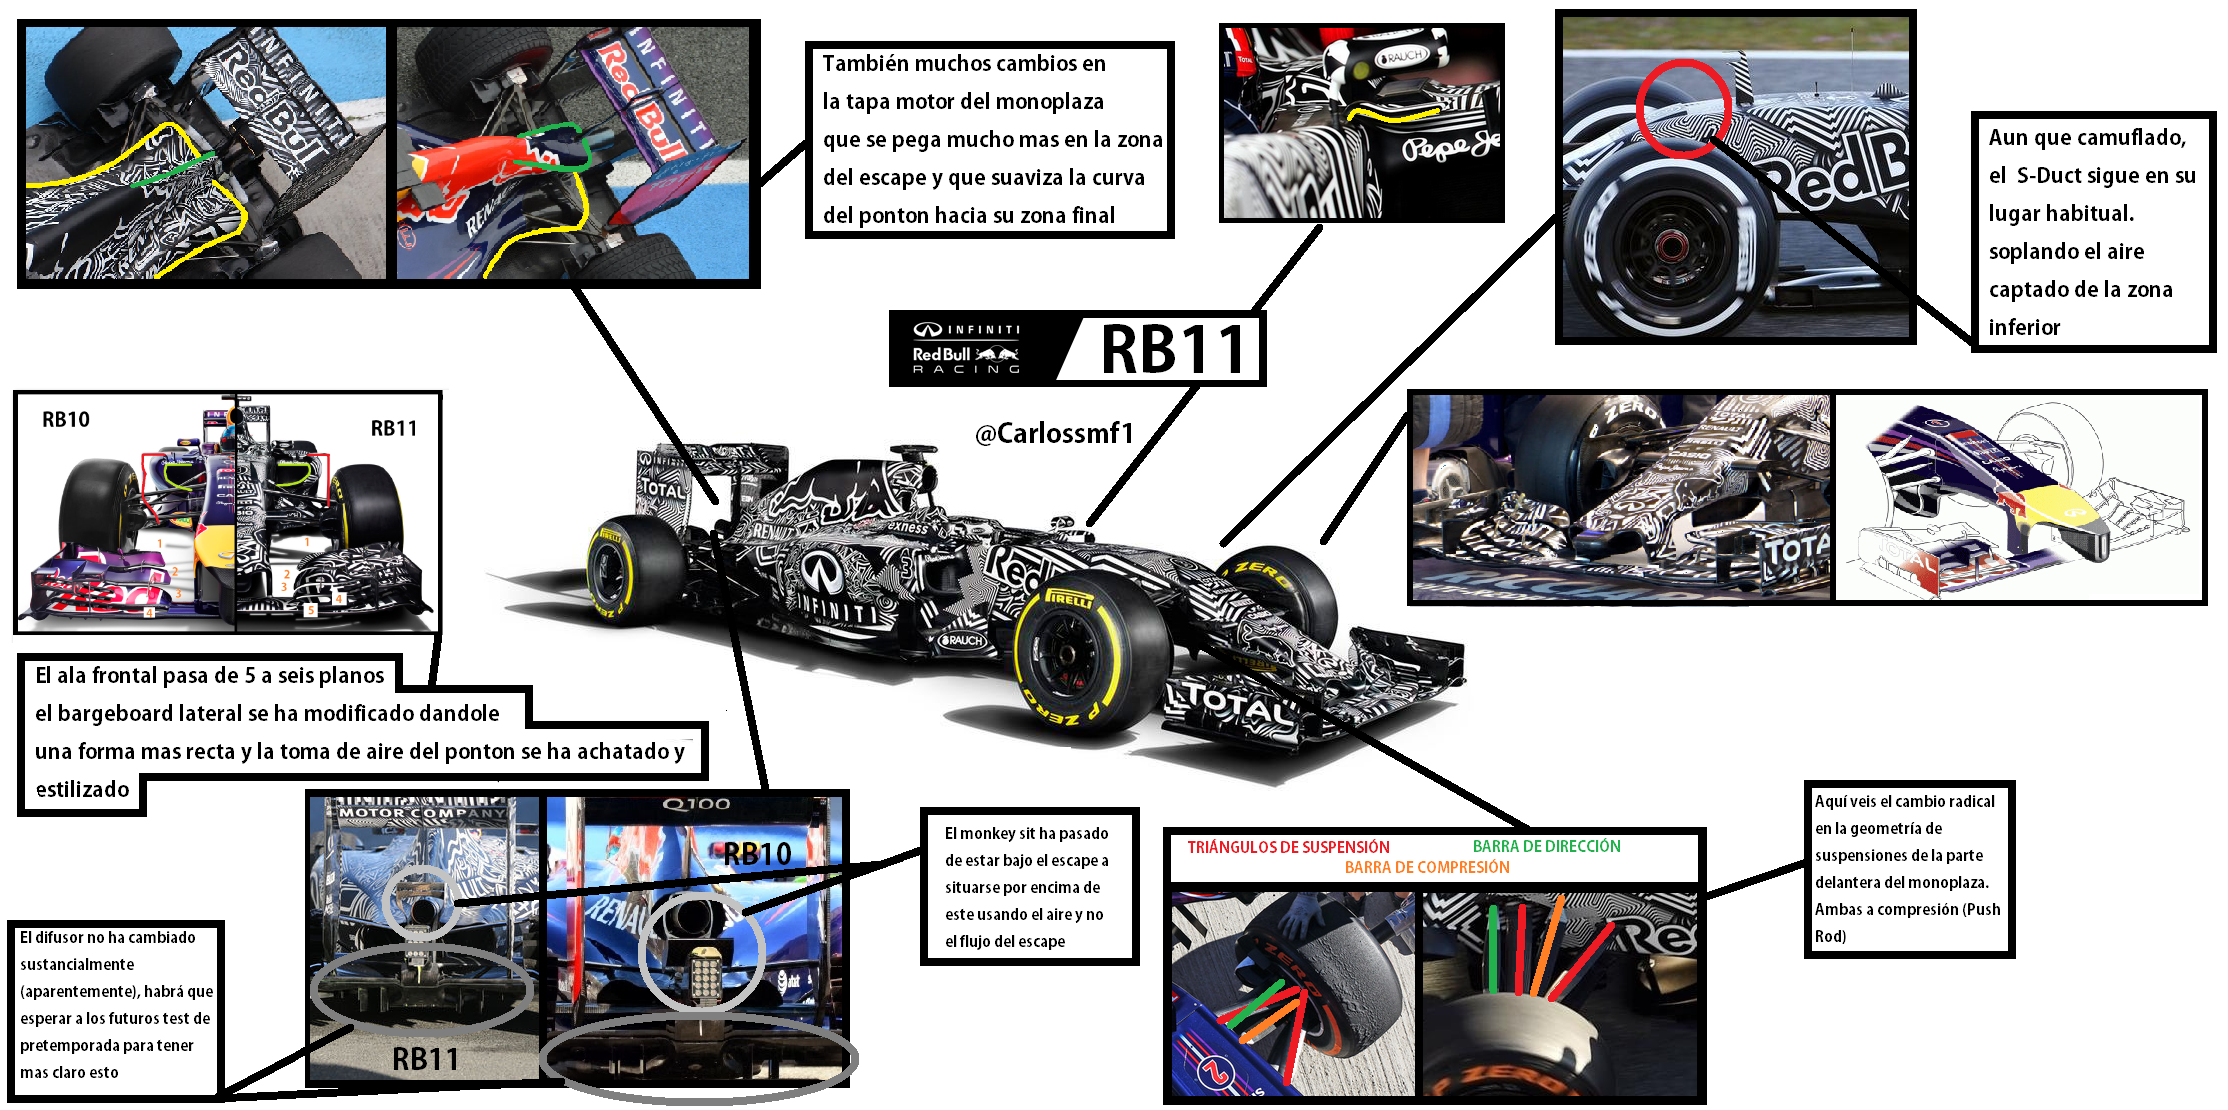 Análisis del Red Bull RB11